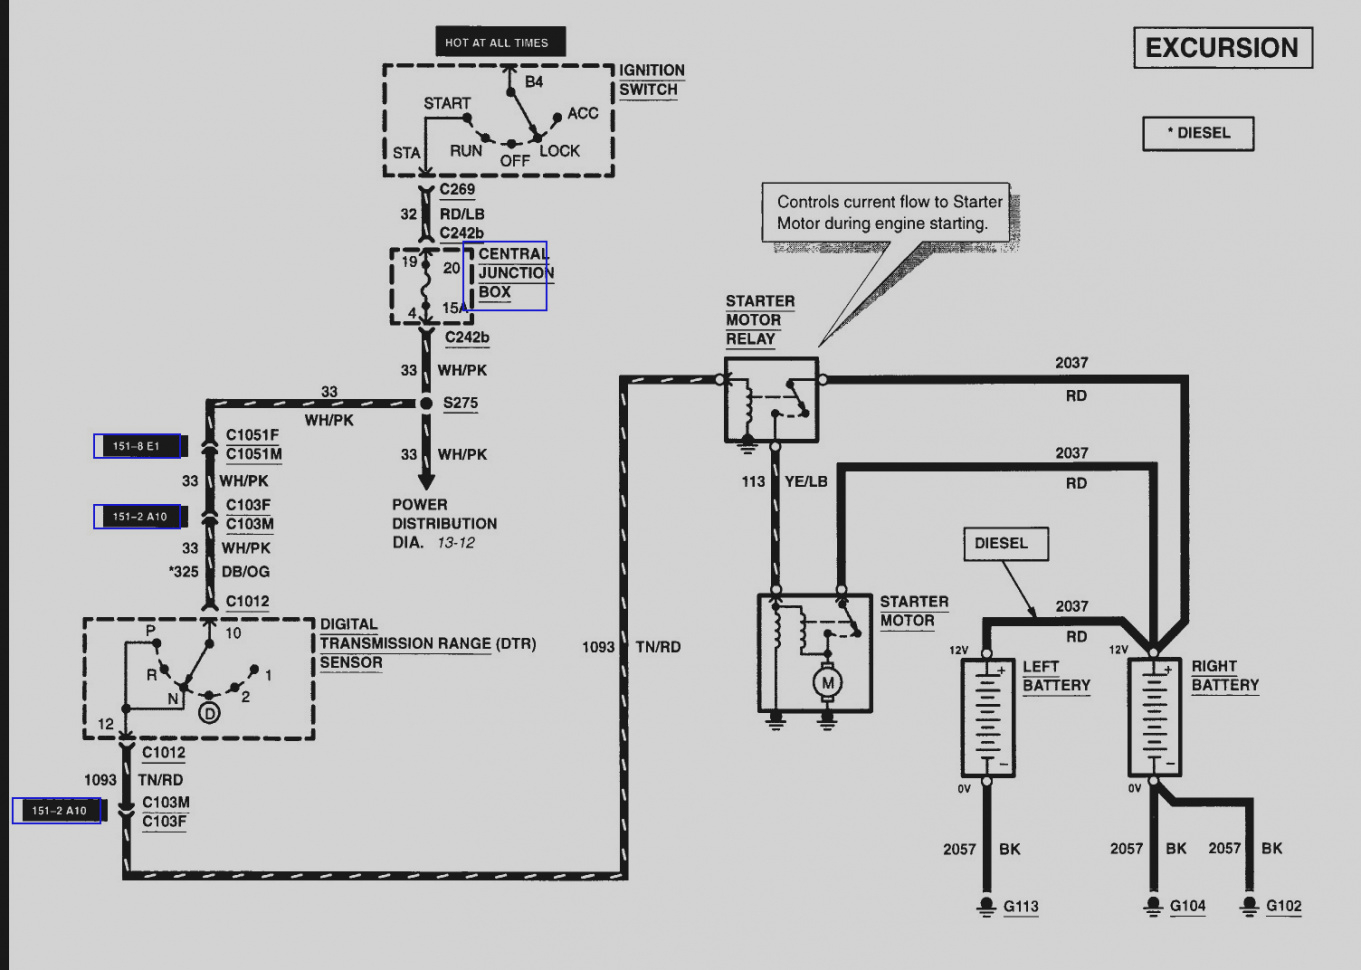 excursion wiring diagram | wiring diagram  wiring diagram - autoscout24